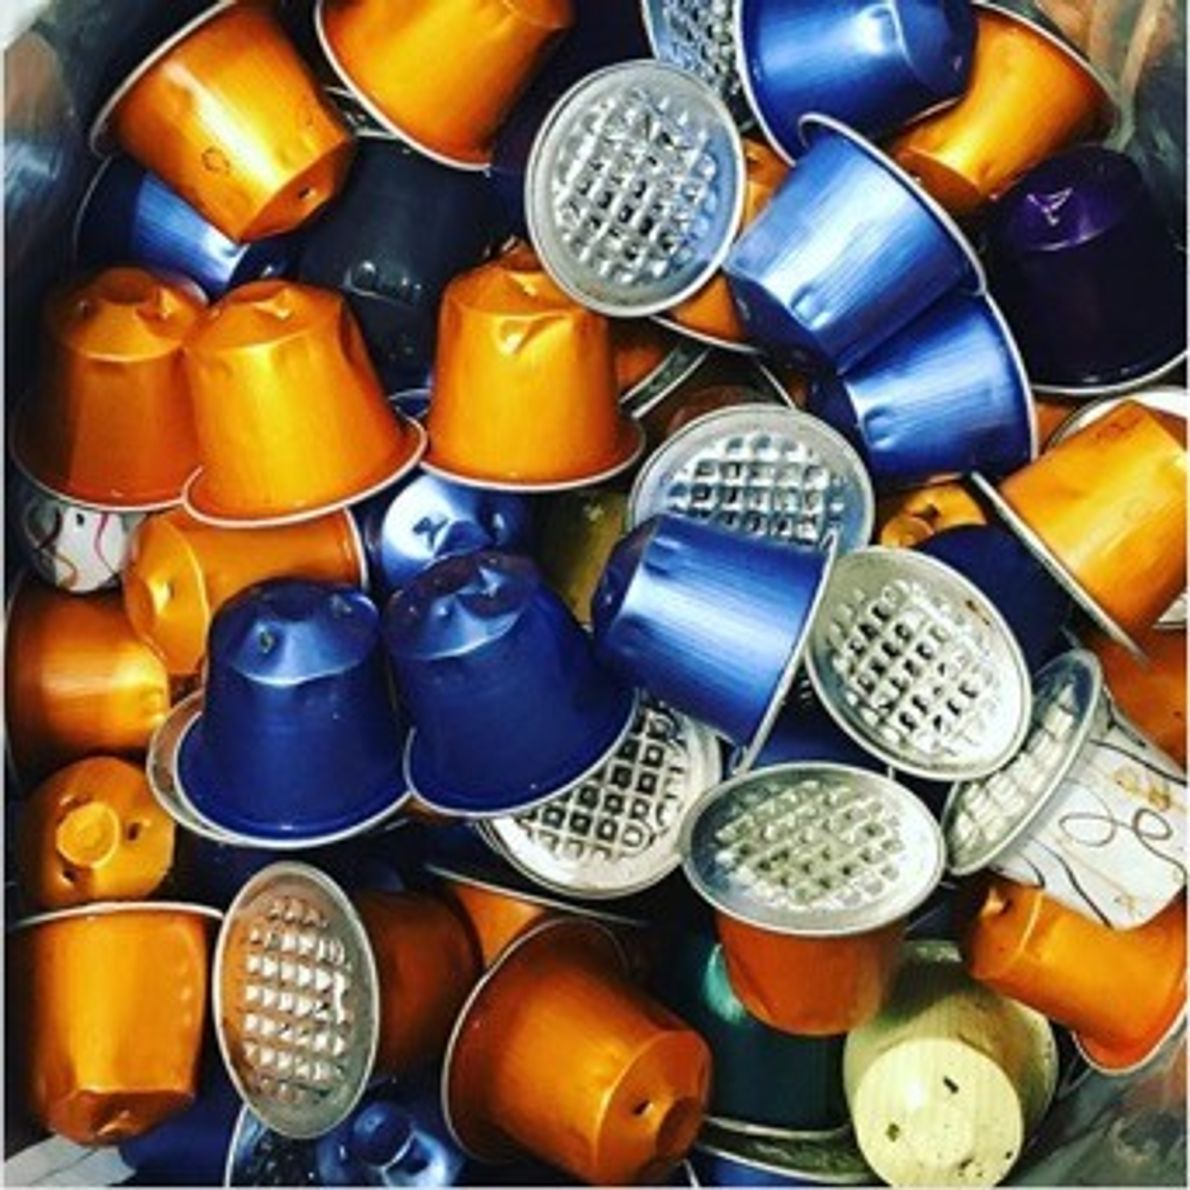 Why Recycling Coffee Capsules Leads to a More Sustainable Future